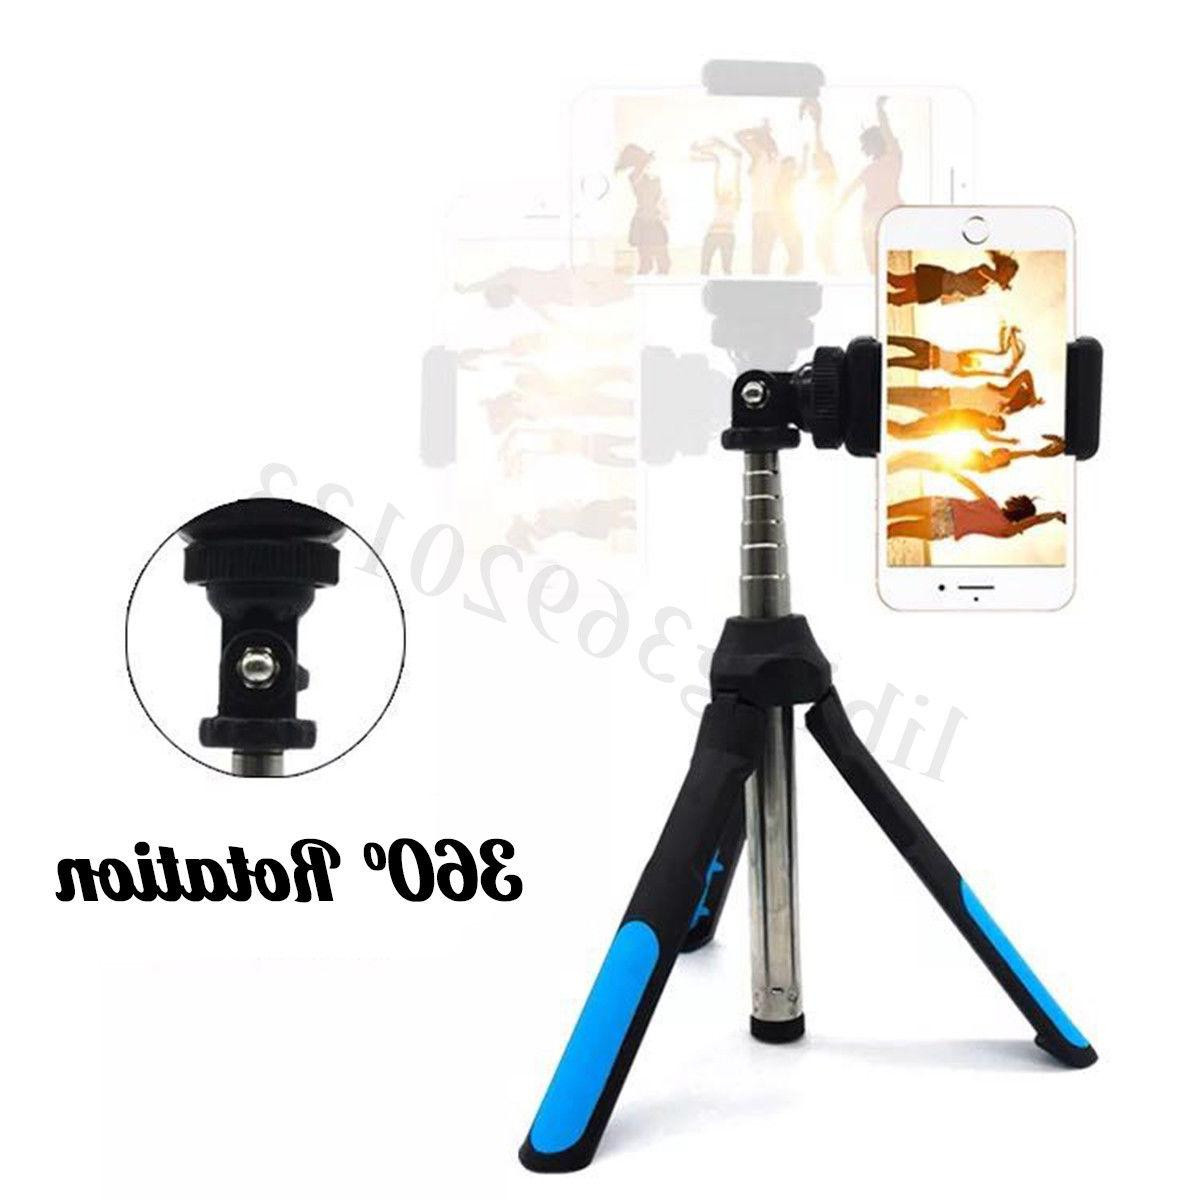 3-In1 Telescopic Arm Stick Tripod bluetooth For Phone Camera